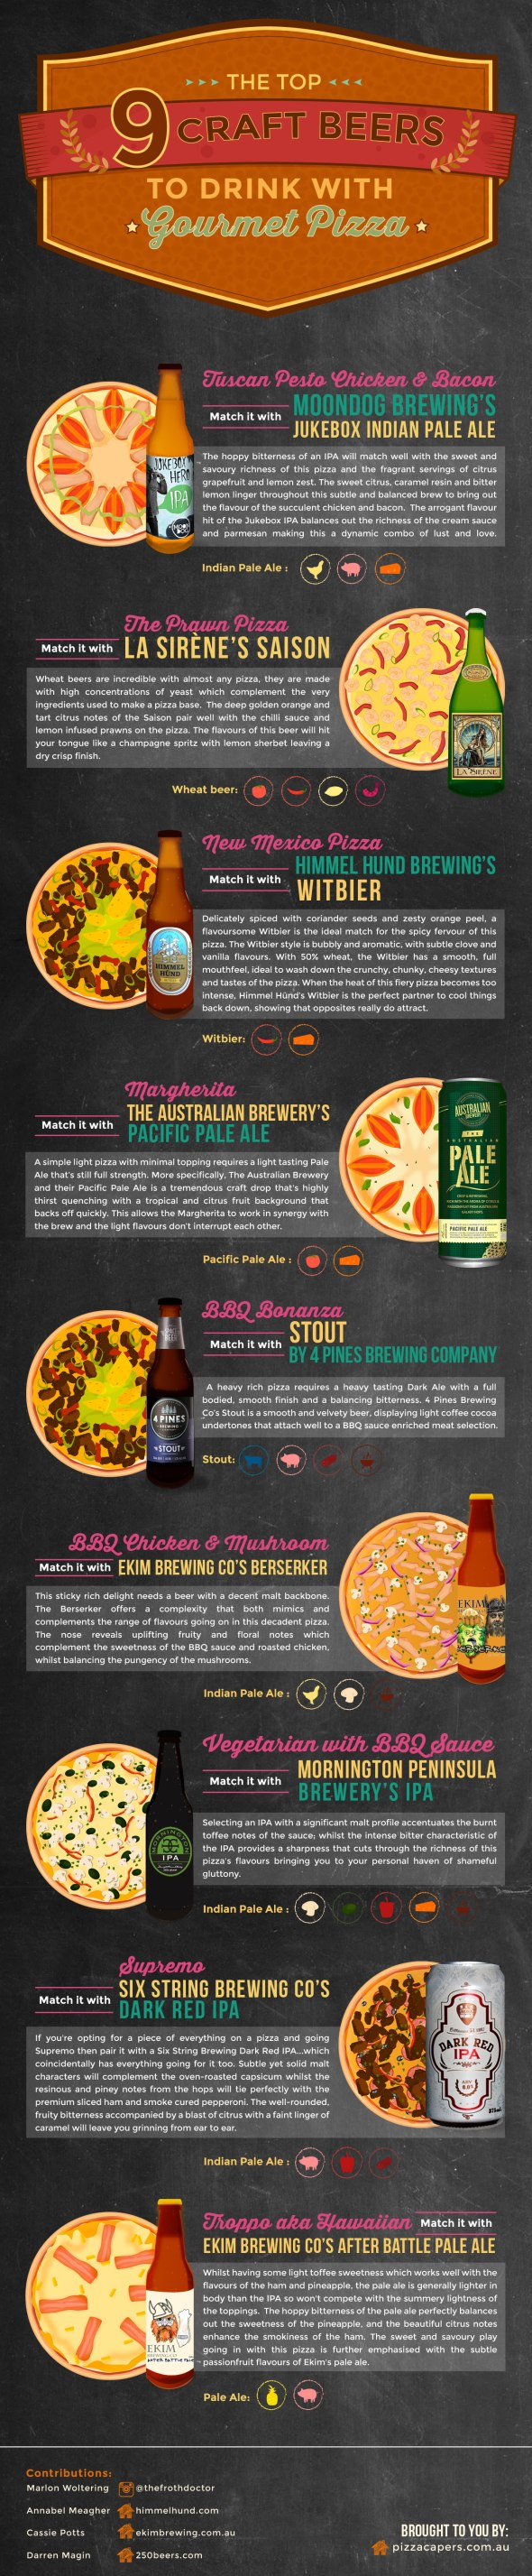 PizzaCapers_ Top 9 Craft Beers to Drink with Pizza